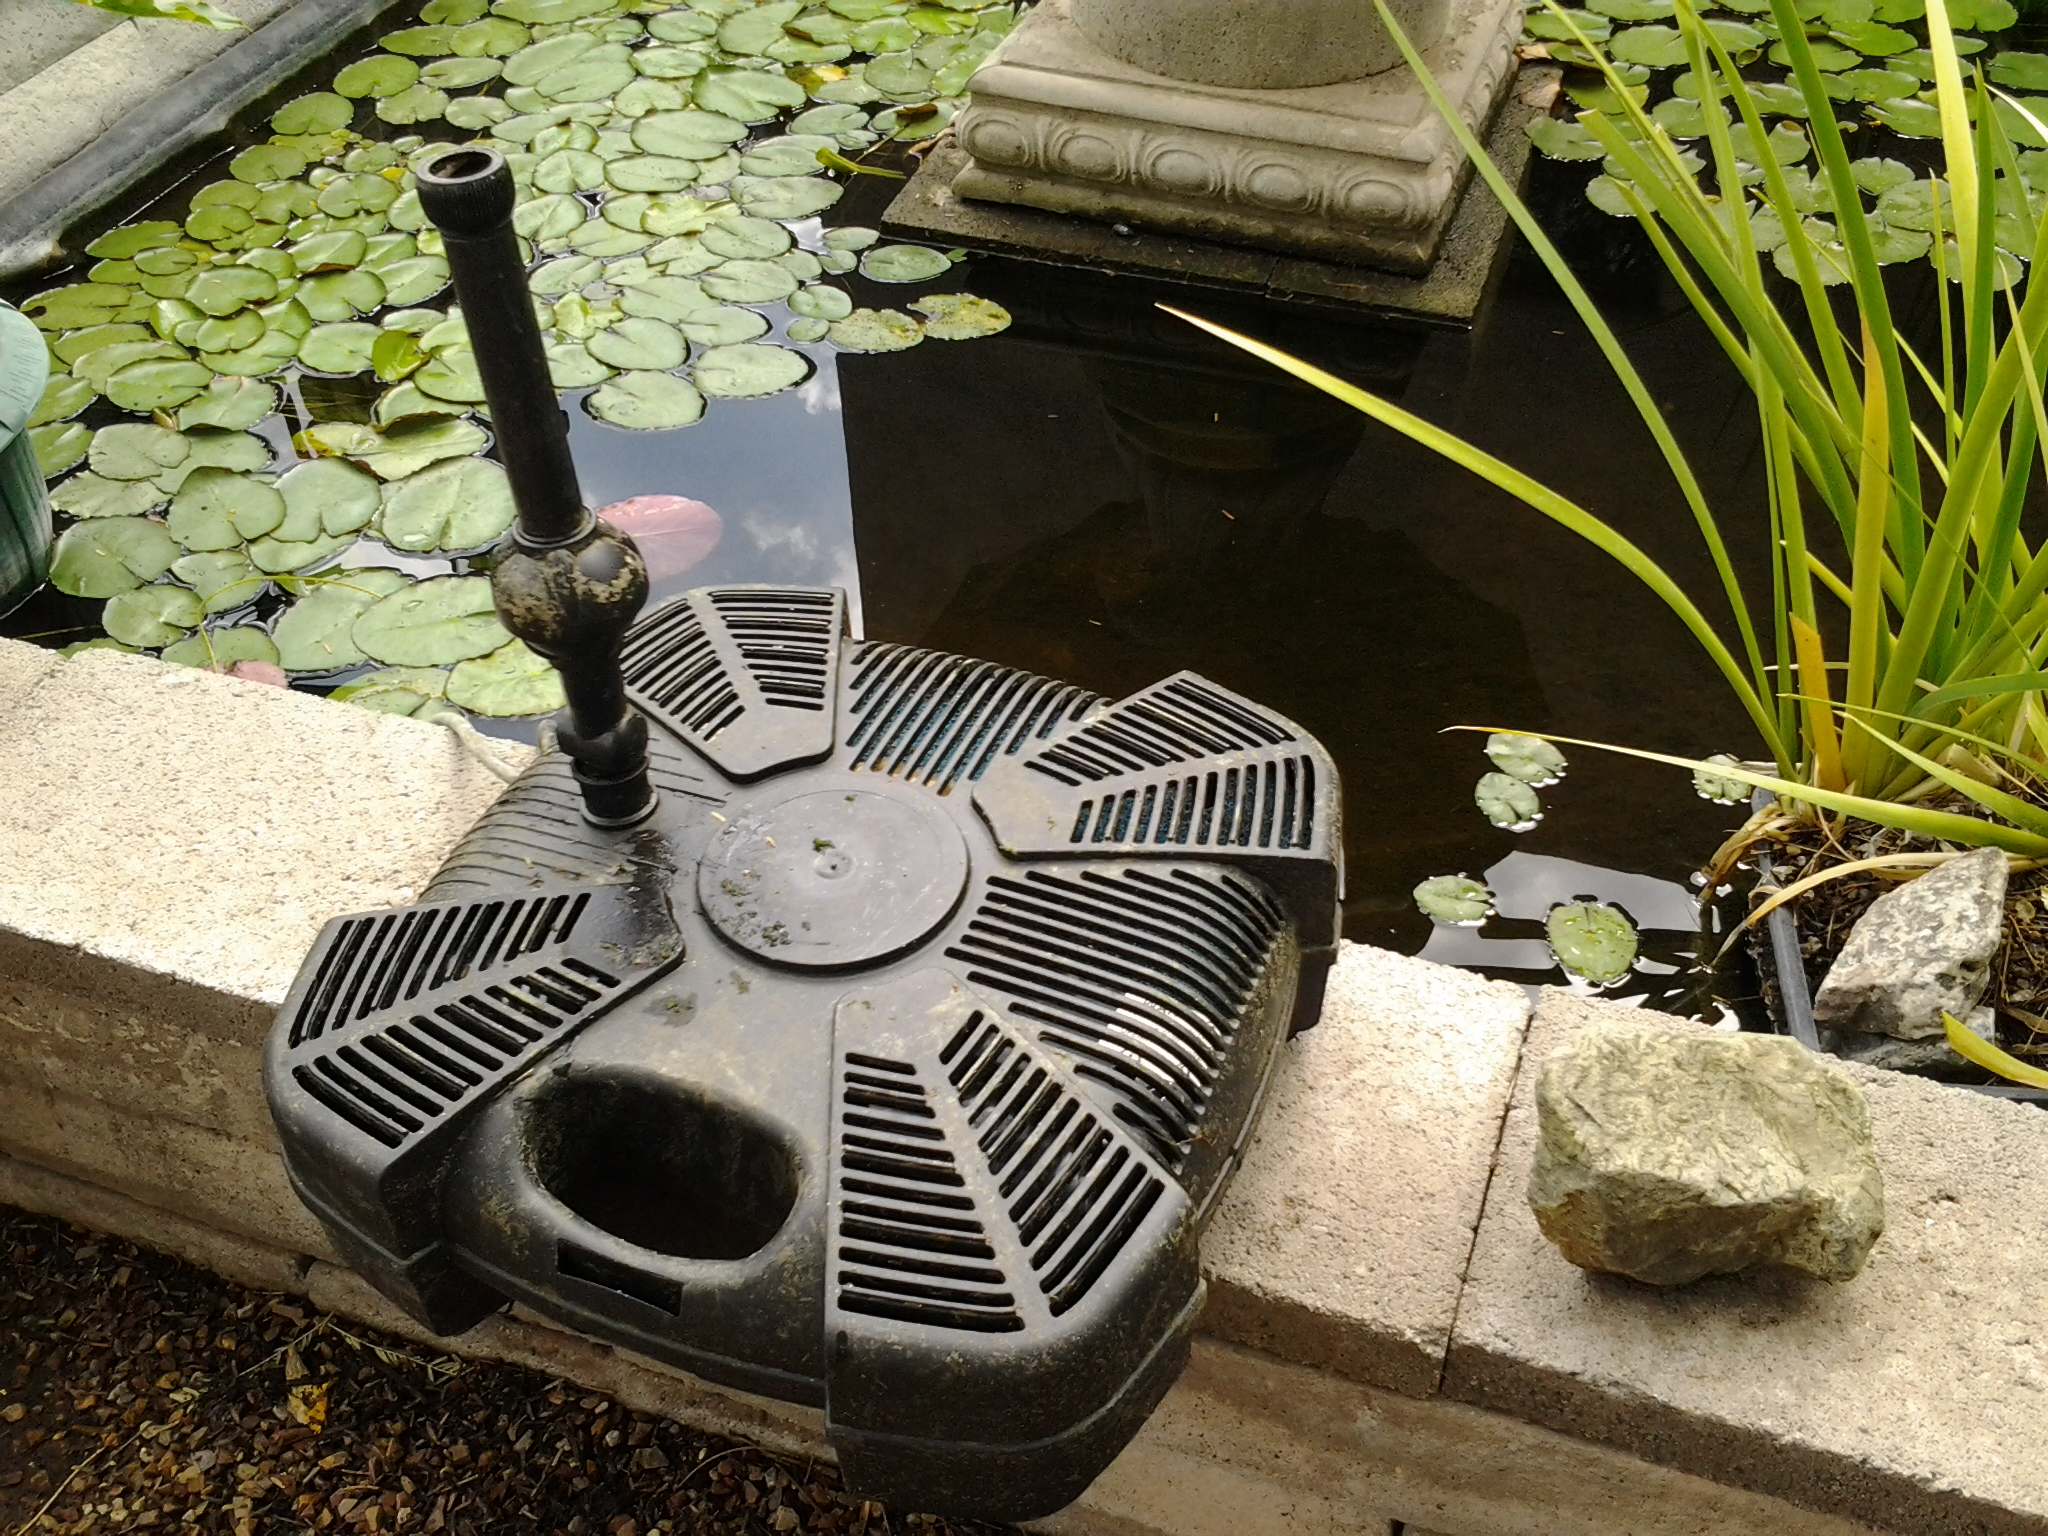 Best pond filter system all in one lifegard pump with uv for Best koi filter system